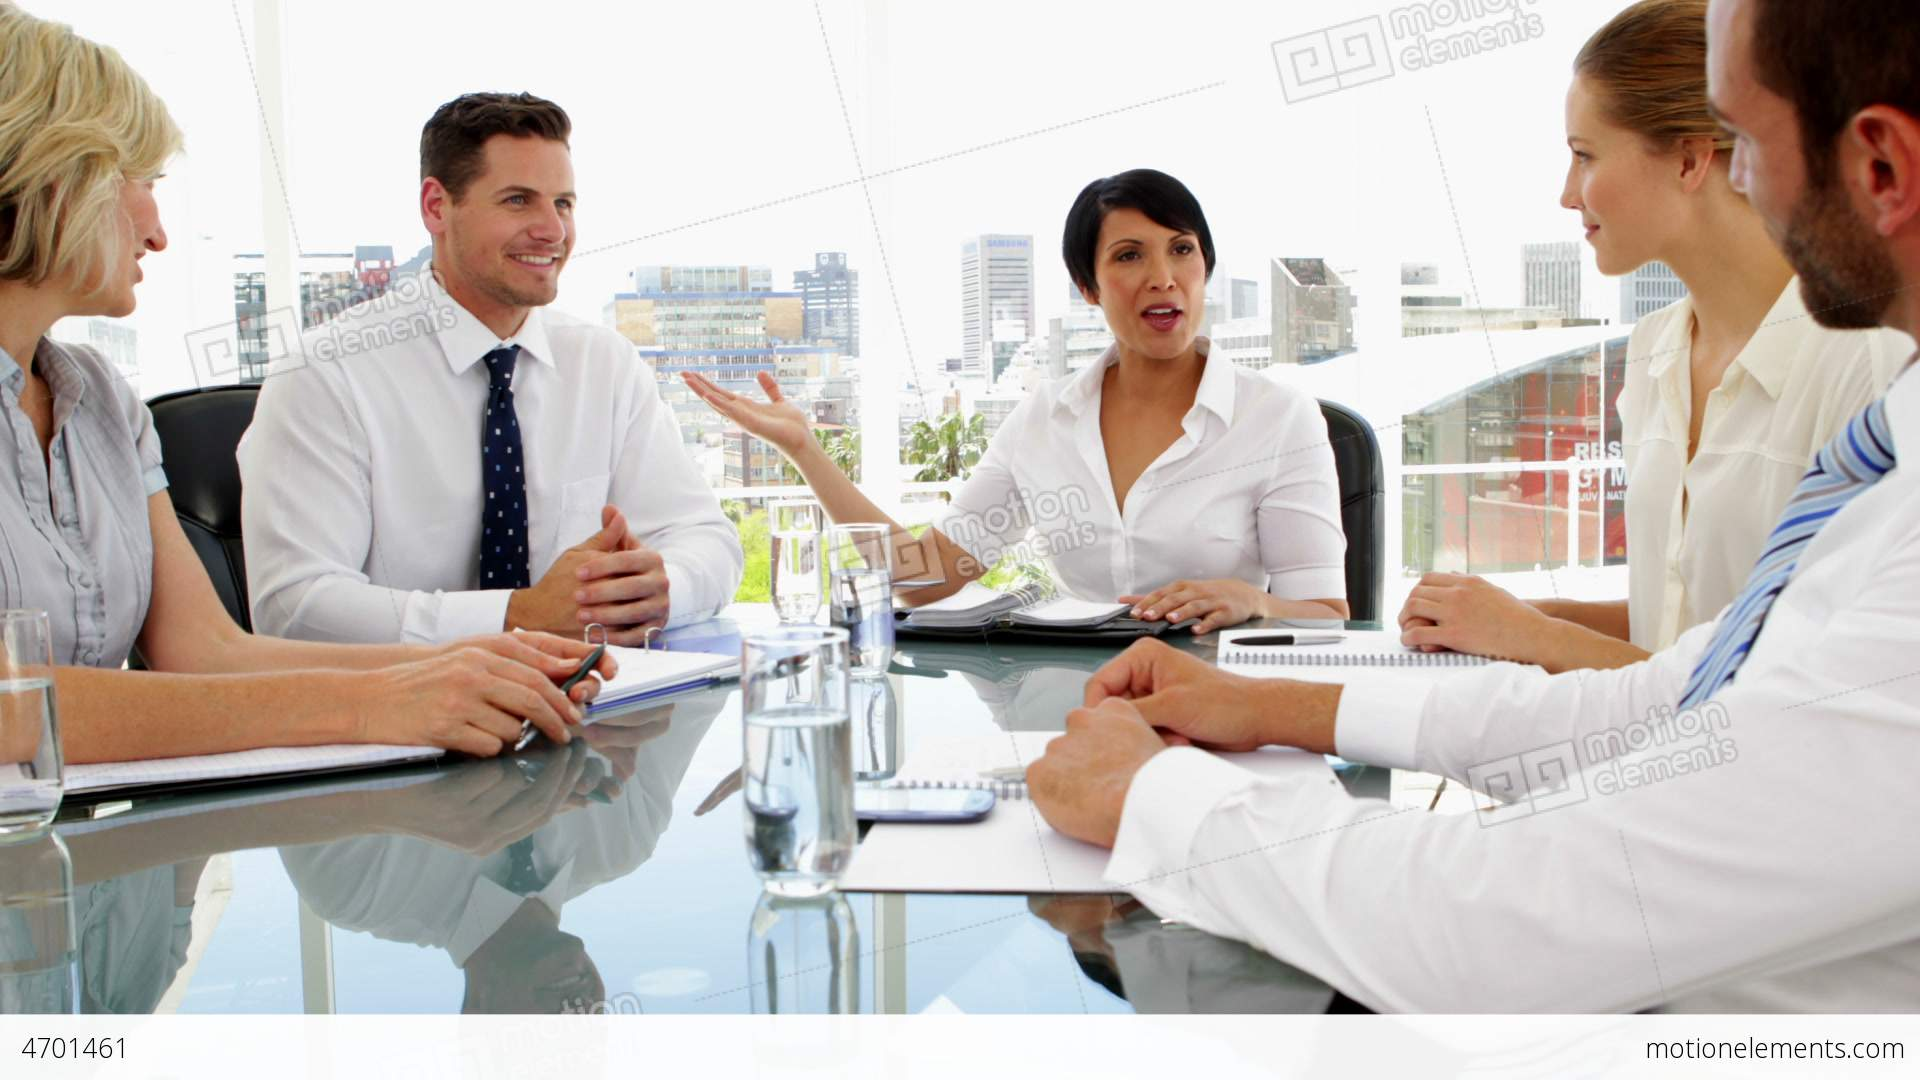 me4701461-happy-business-people-shaking-hands-during-meeting-south-africa-hd-a0051.jpg